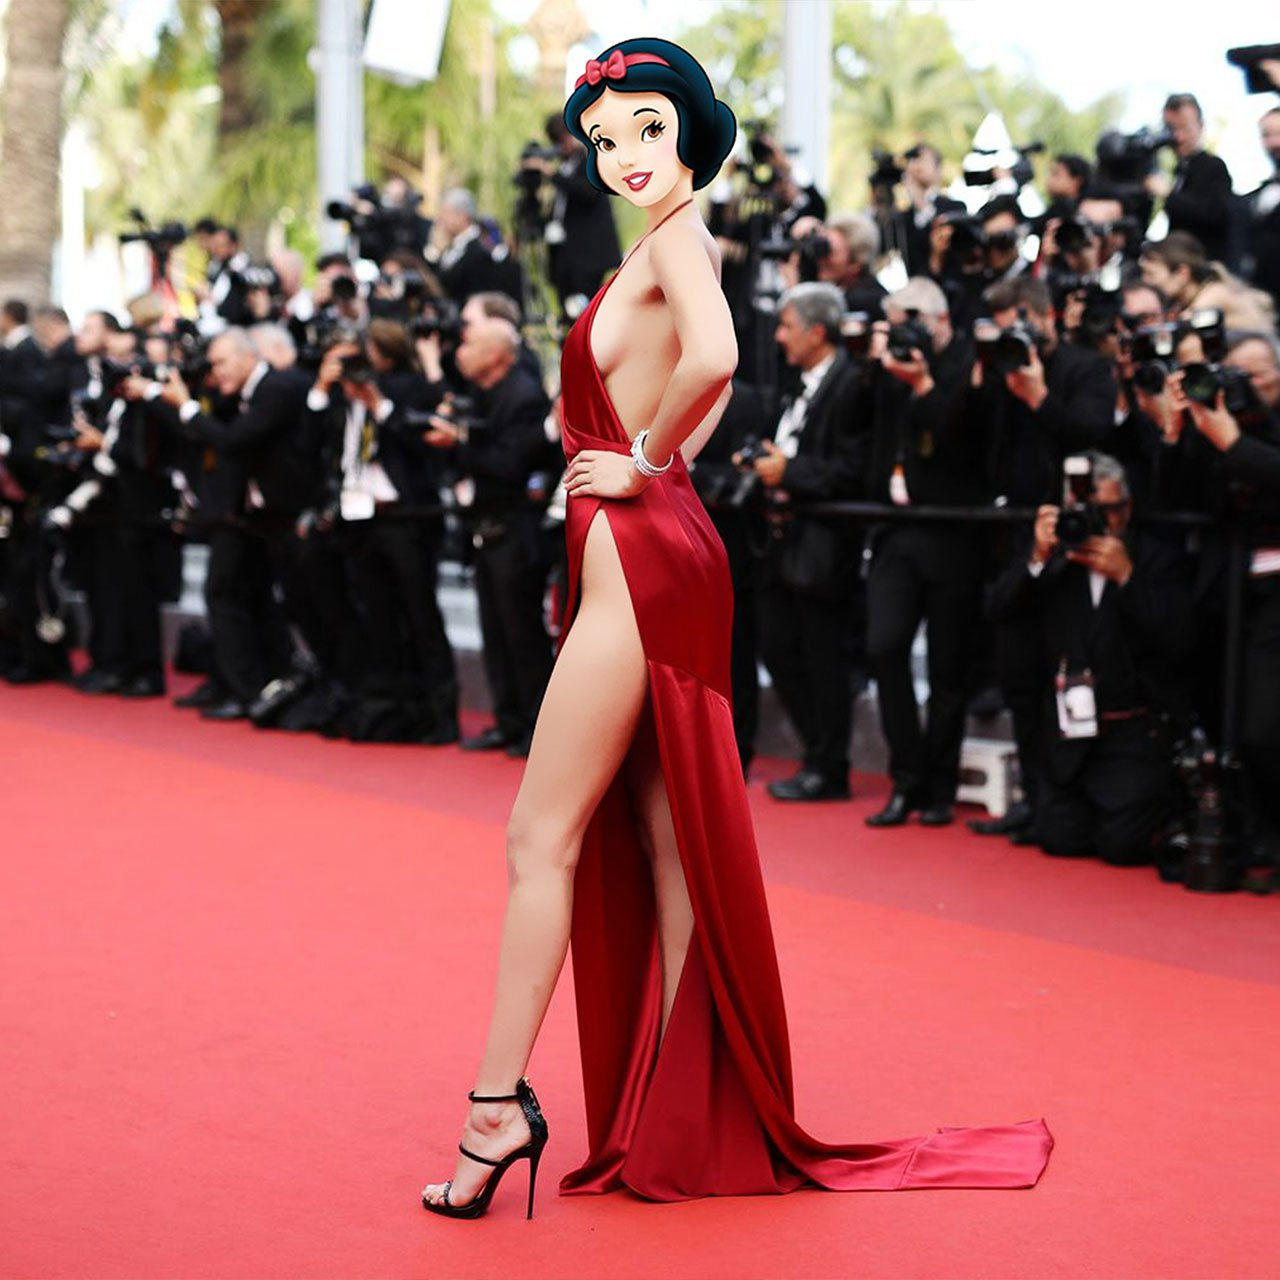 f11_animation_in_reality_by_gregory_masouras_bella_hadid_as_snow_white_photo_by_gettyimages_yatzer